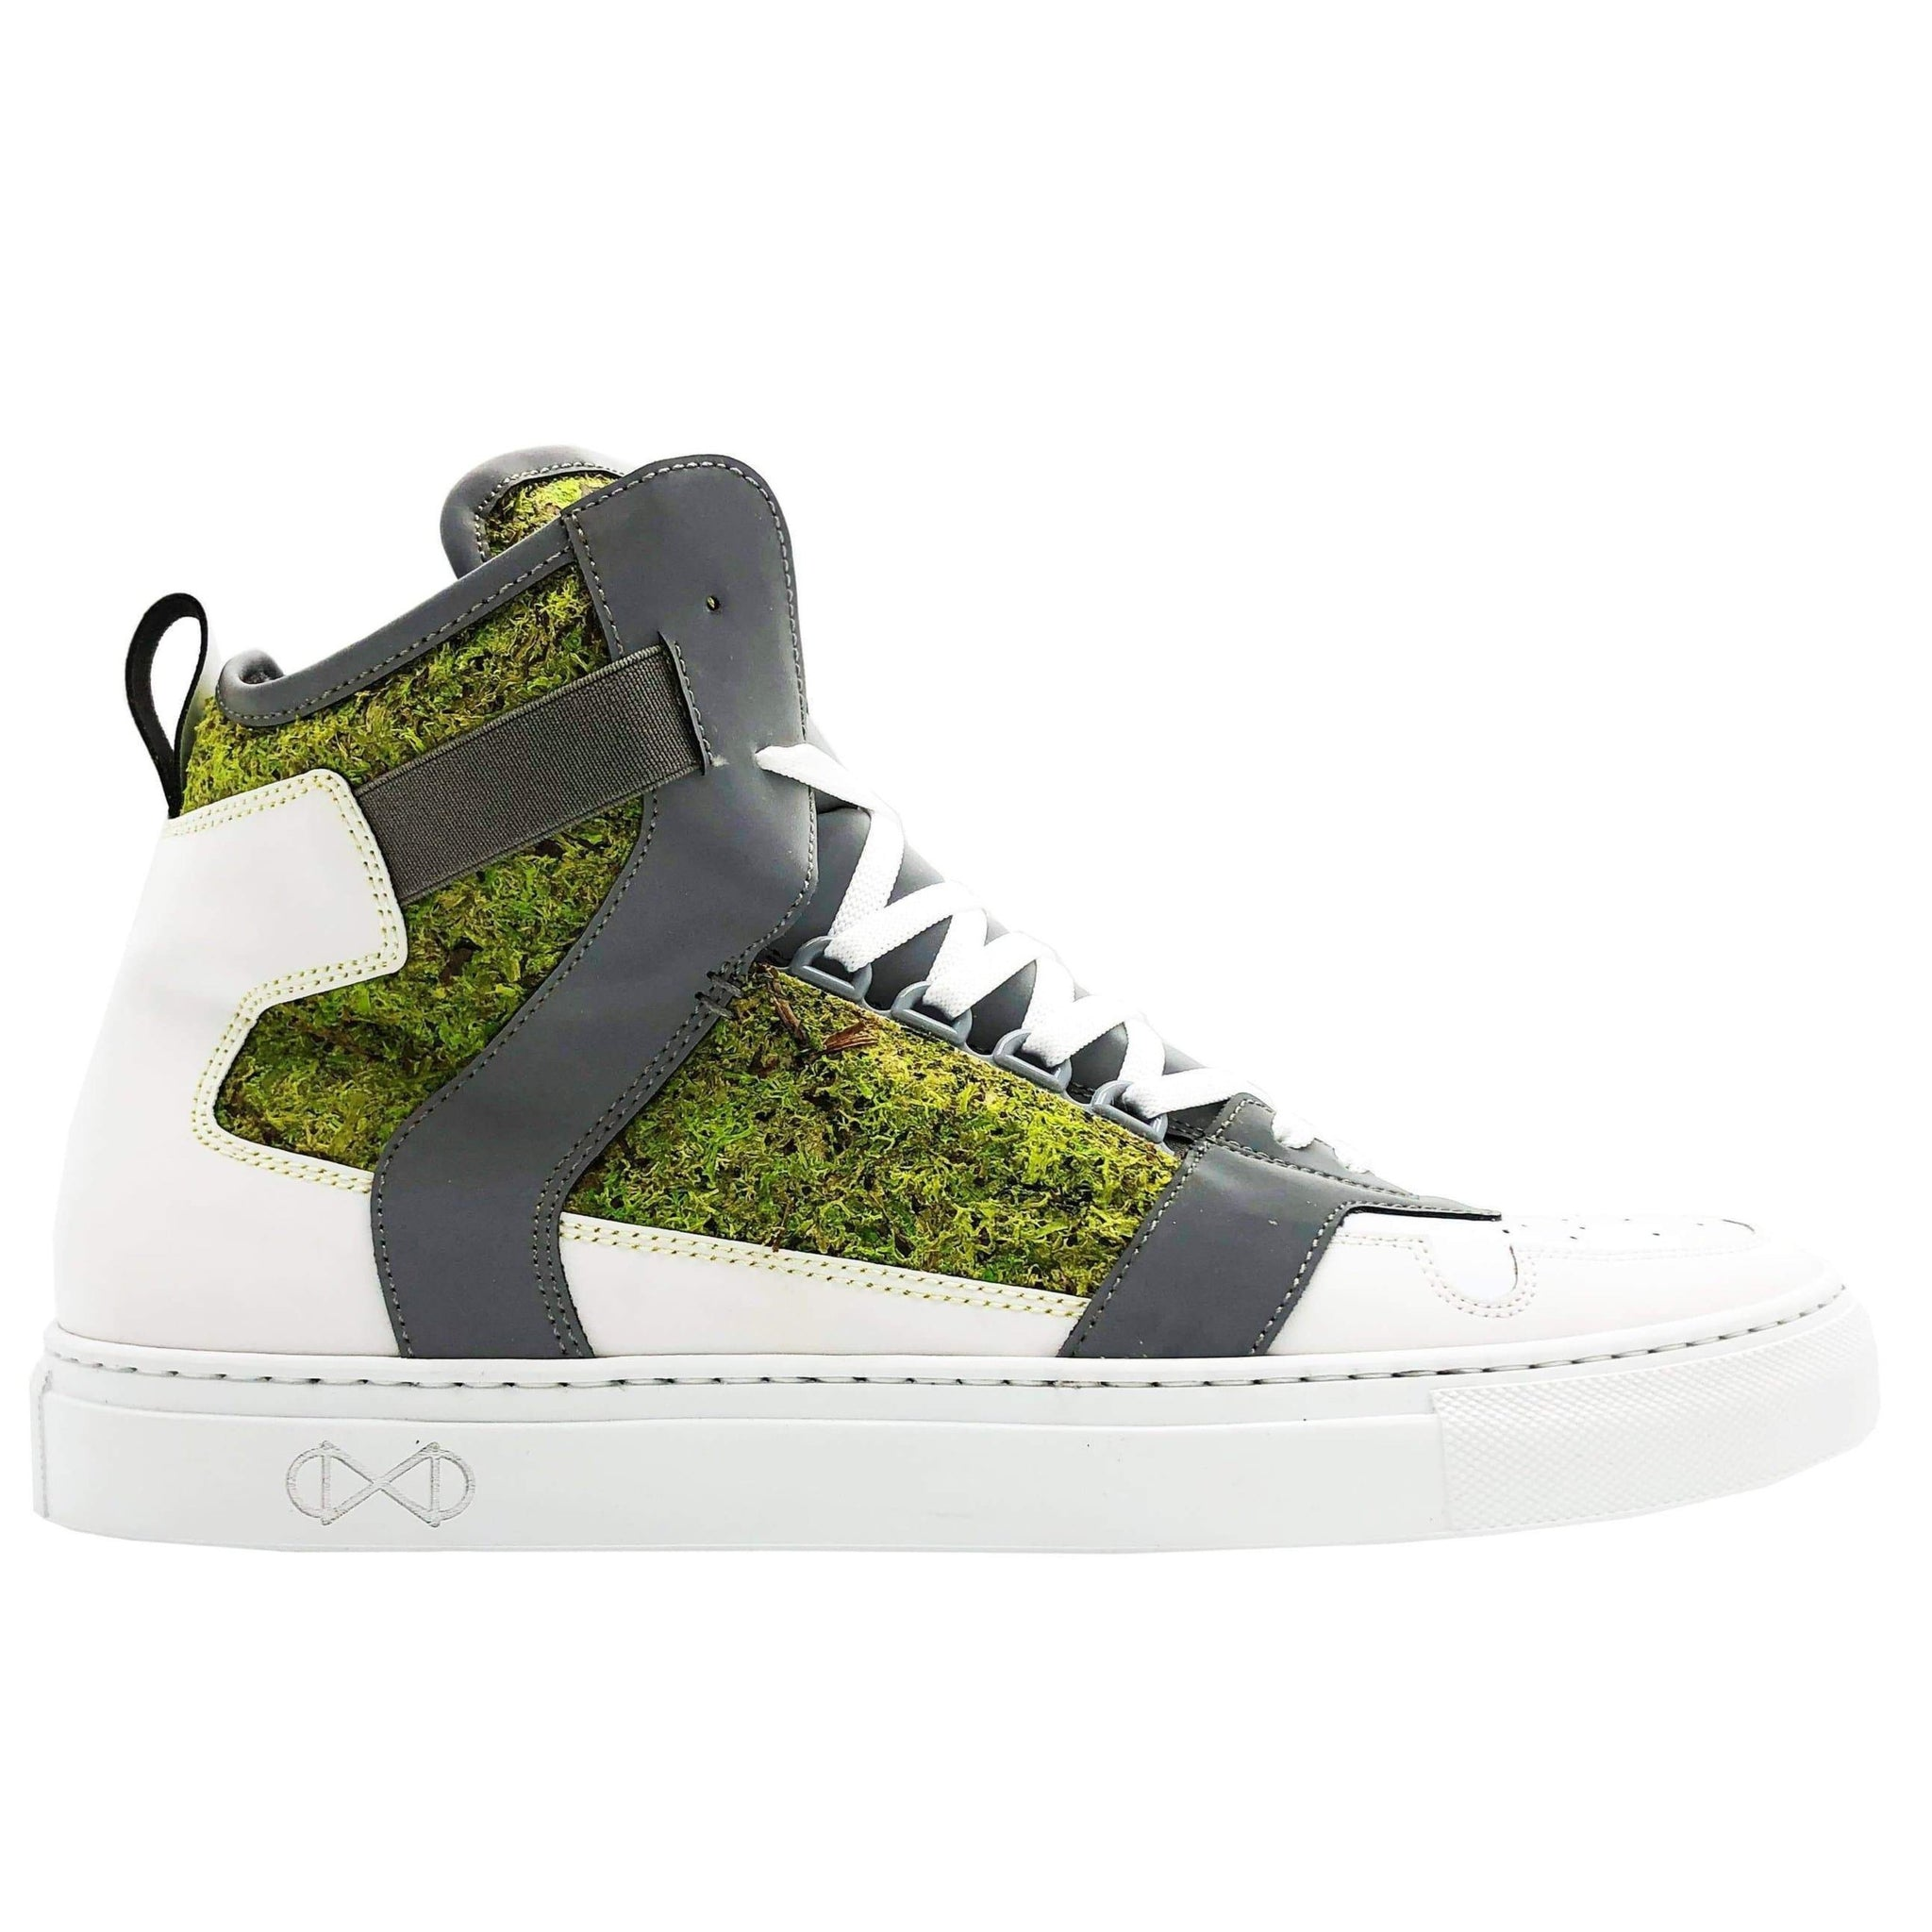 NAT 2 shoe Moss Cube Sneakers. Real Moss, Glass and Recycled PET Bottles. sustainable fashion ethical fashion